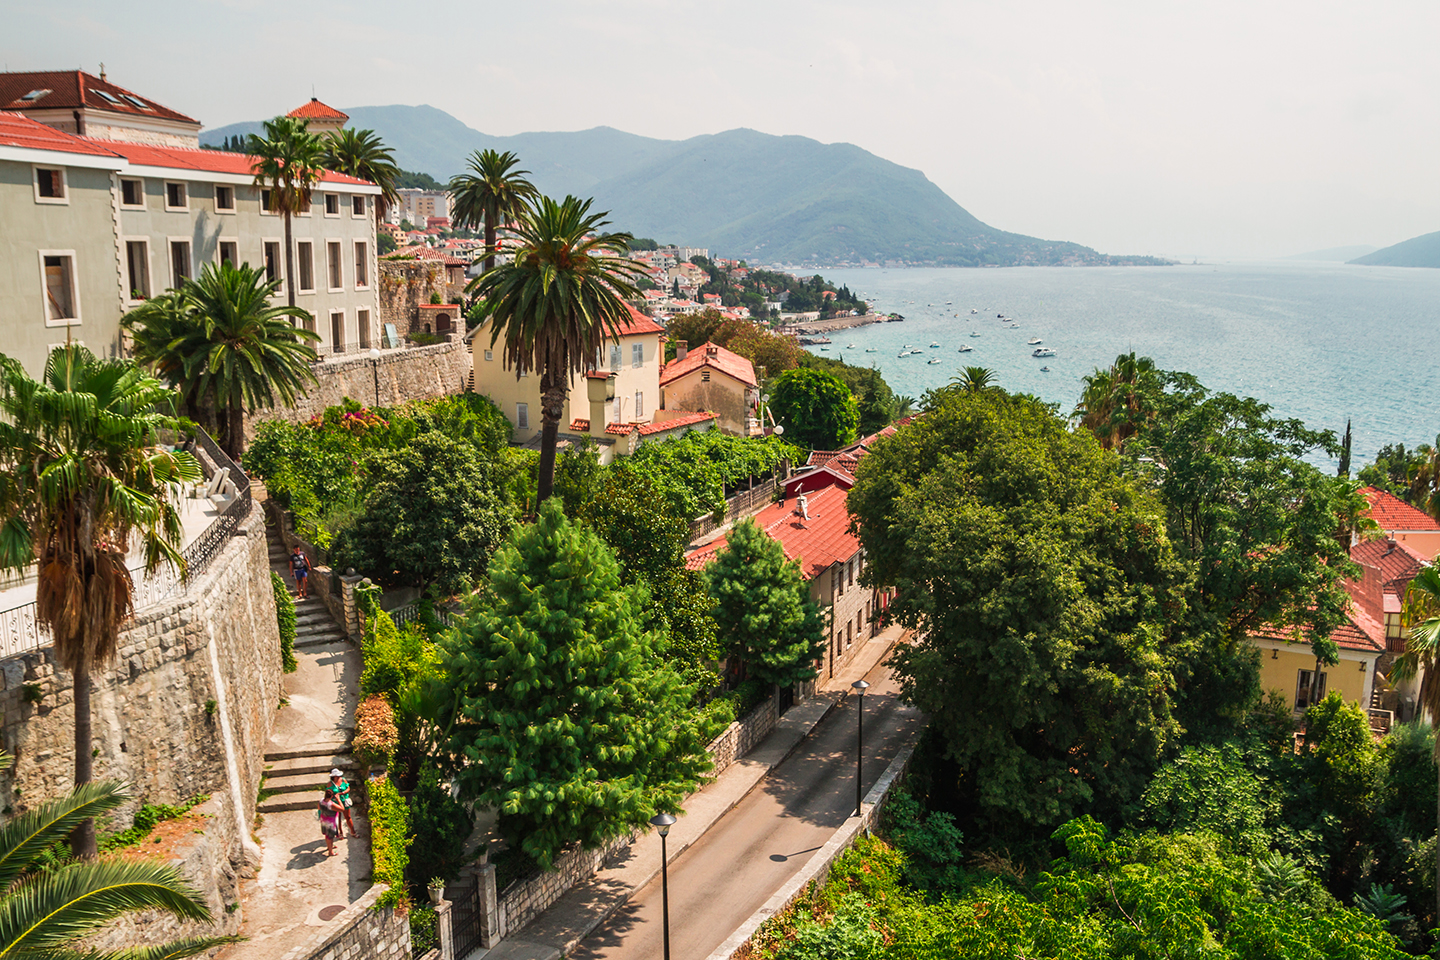 Buildings and palm trees in Herceg Novi, Montenegro, a pretty fishing and holiday town